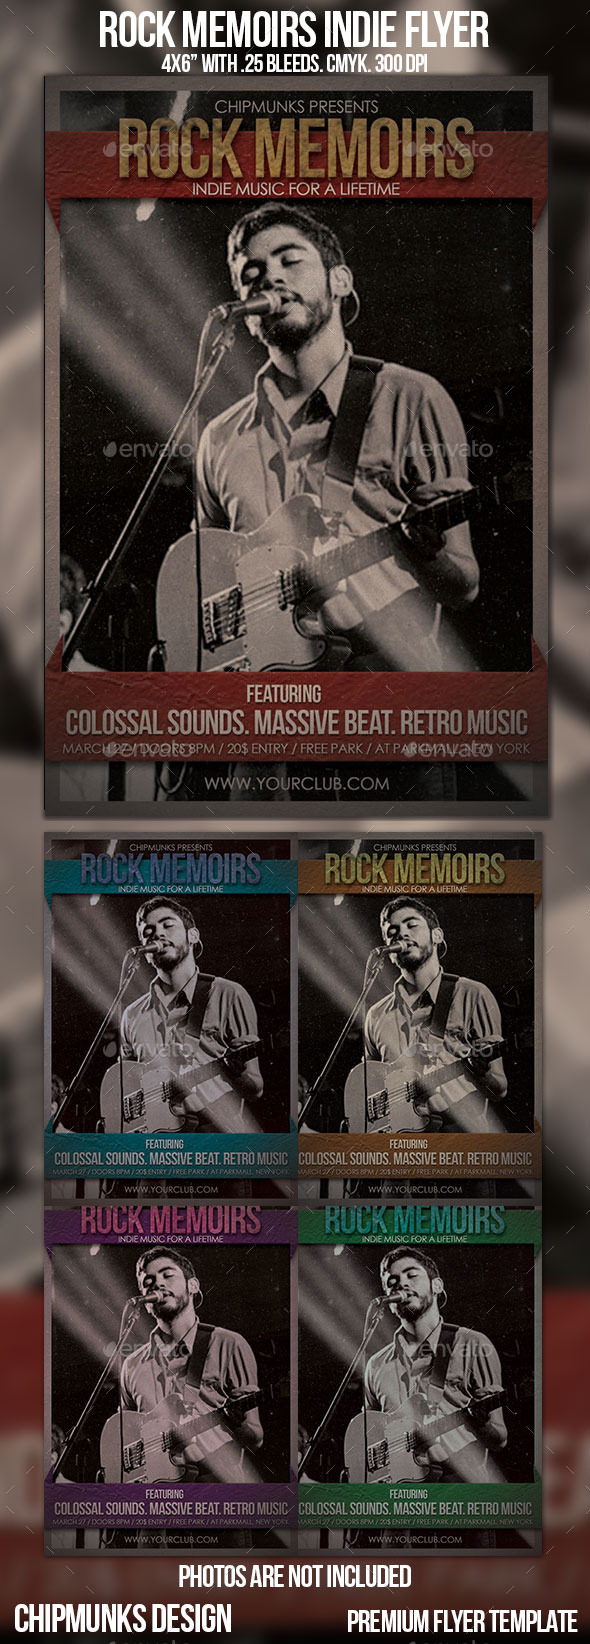 GraphicRiver Rock Memoirs Indie Flyer 10816386